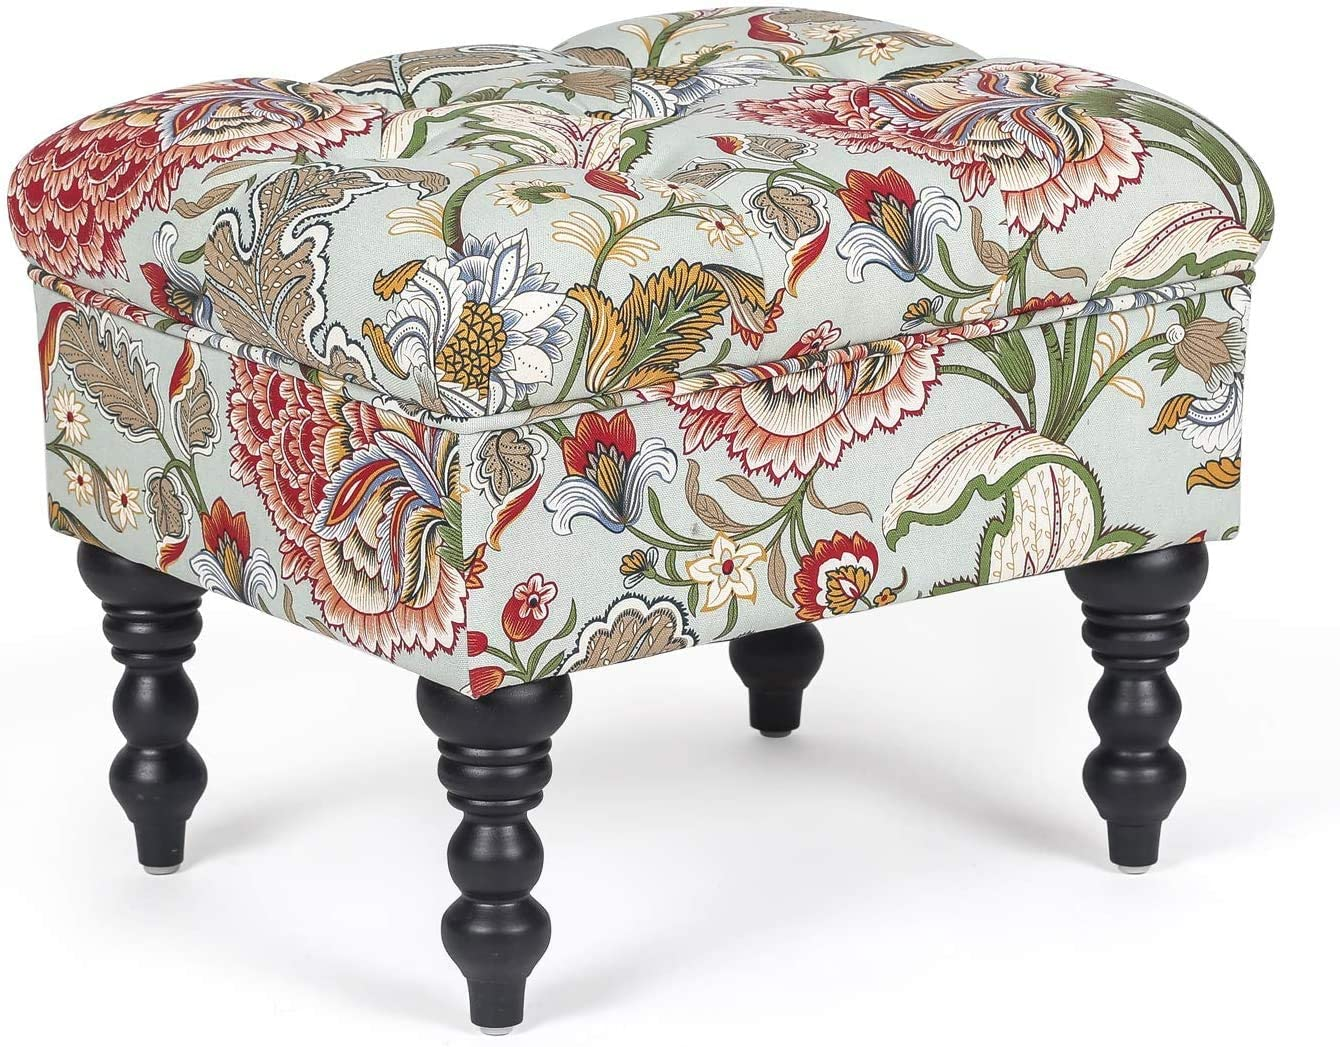 homebeez ottoman stool tufted foot rest fabric floral vanity stool with wood legs floral